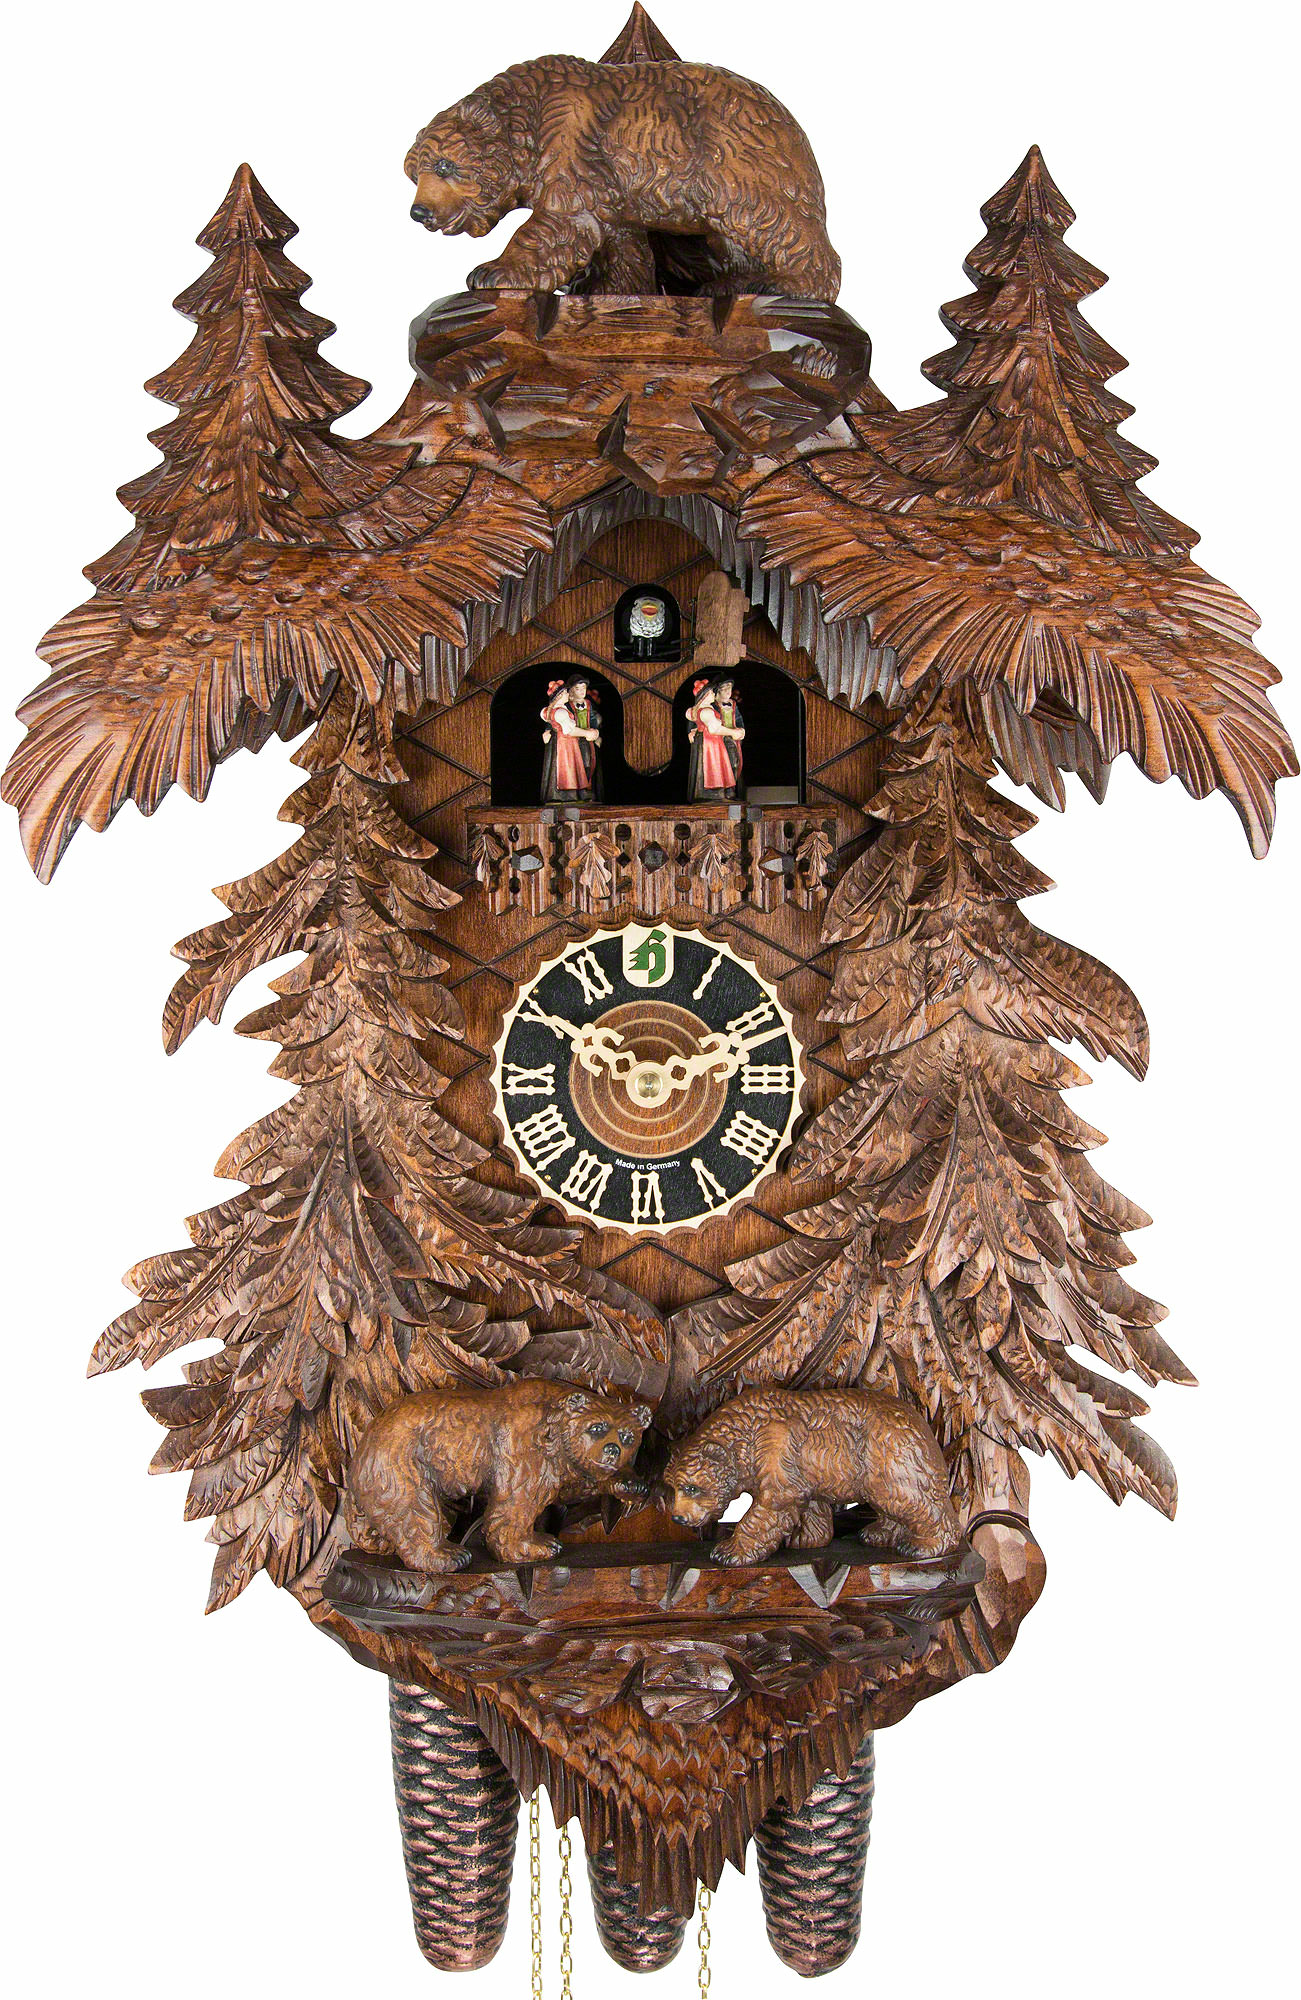 Cuckoo Clock 8daymovement CarvedStyle 58cm by Hnes 867095TKO